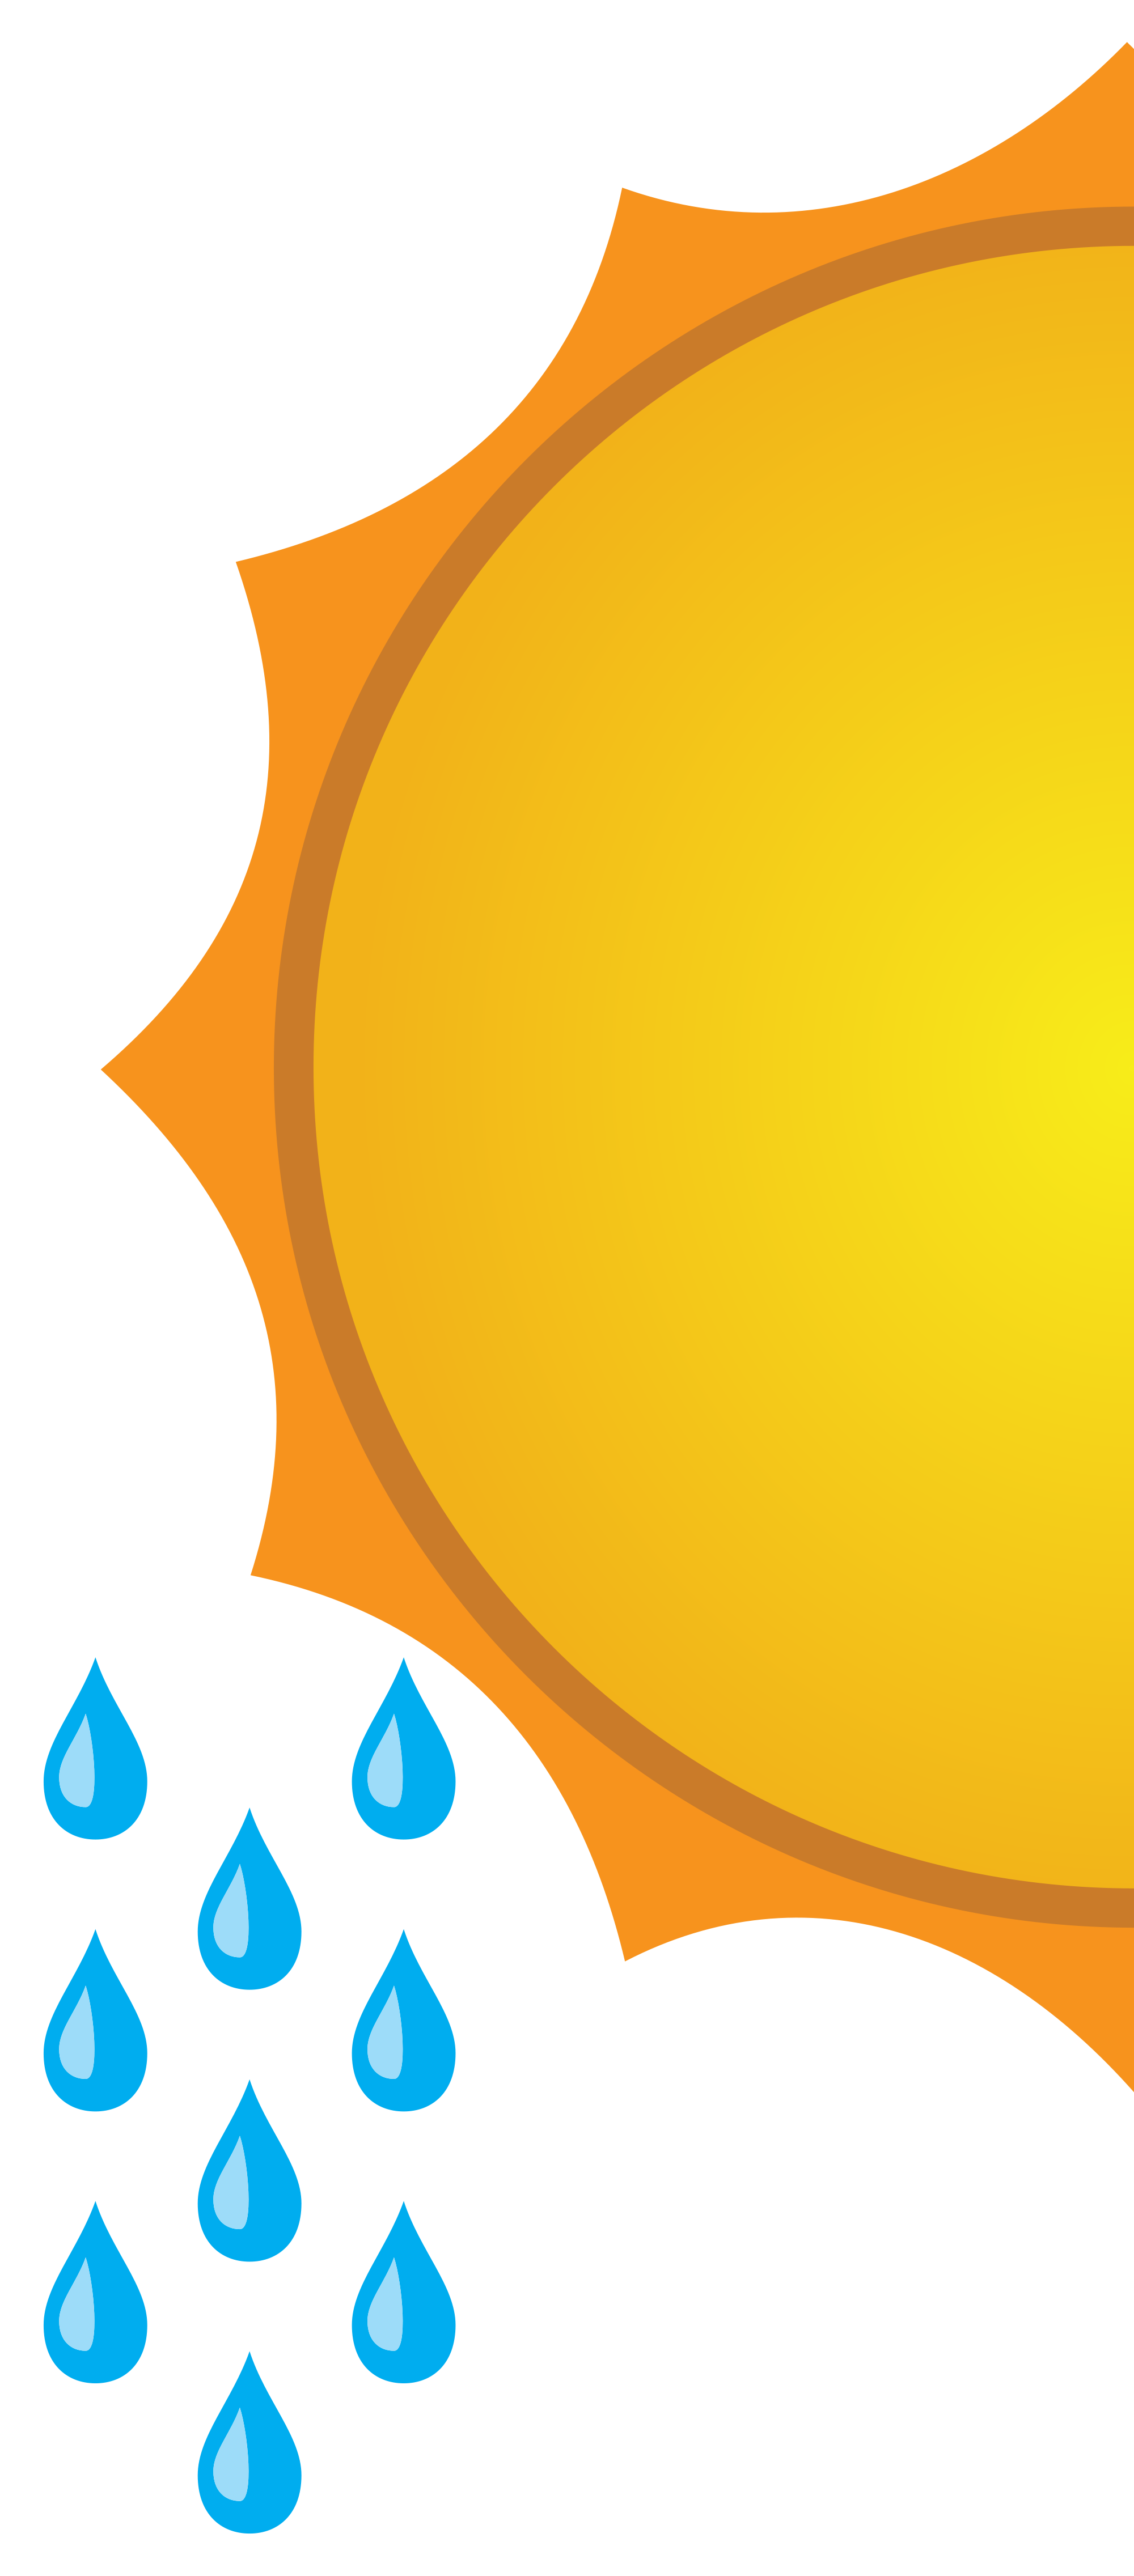 Sun clipart for weather forecast png black and white library File:Weather Forecast-Sunny+rain.svg - Wikimedia Commons png black and white library